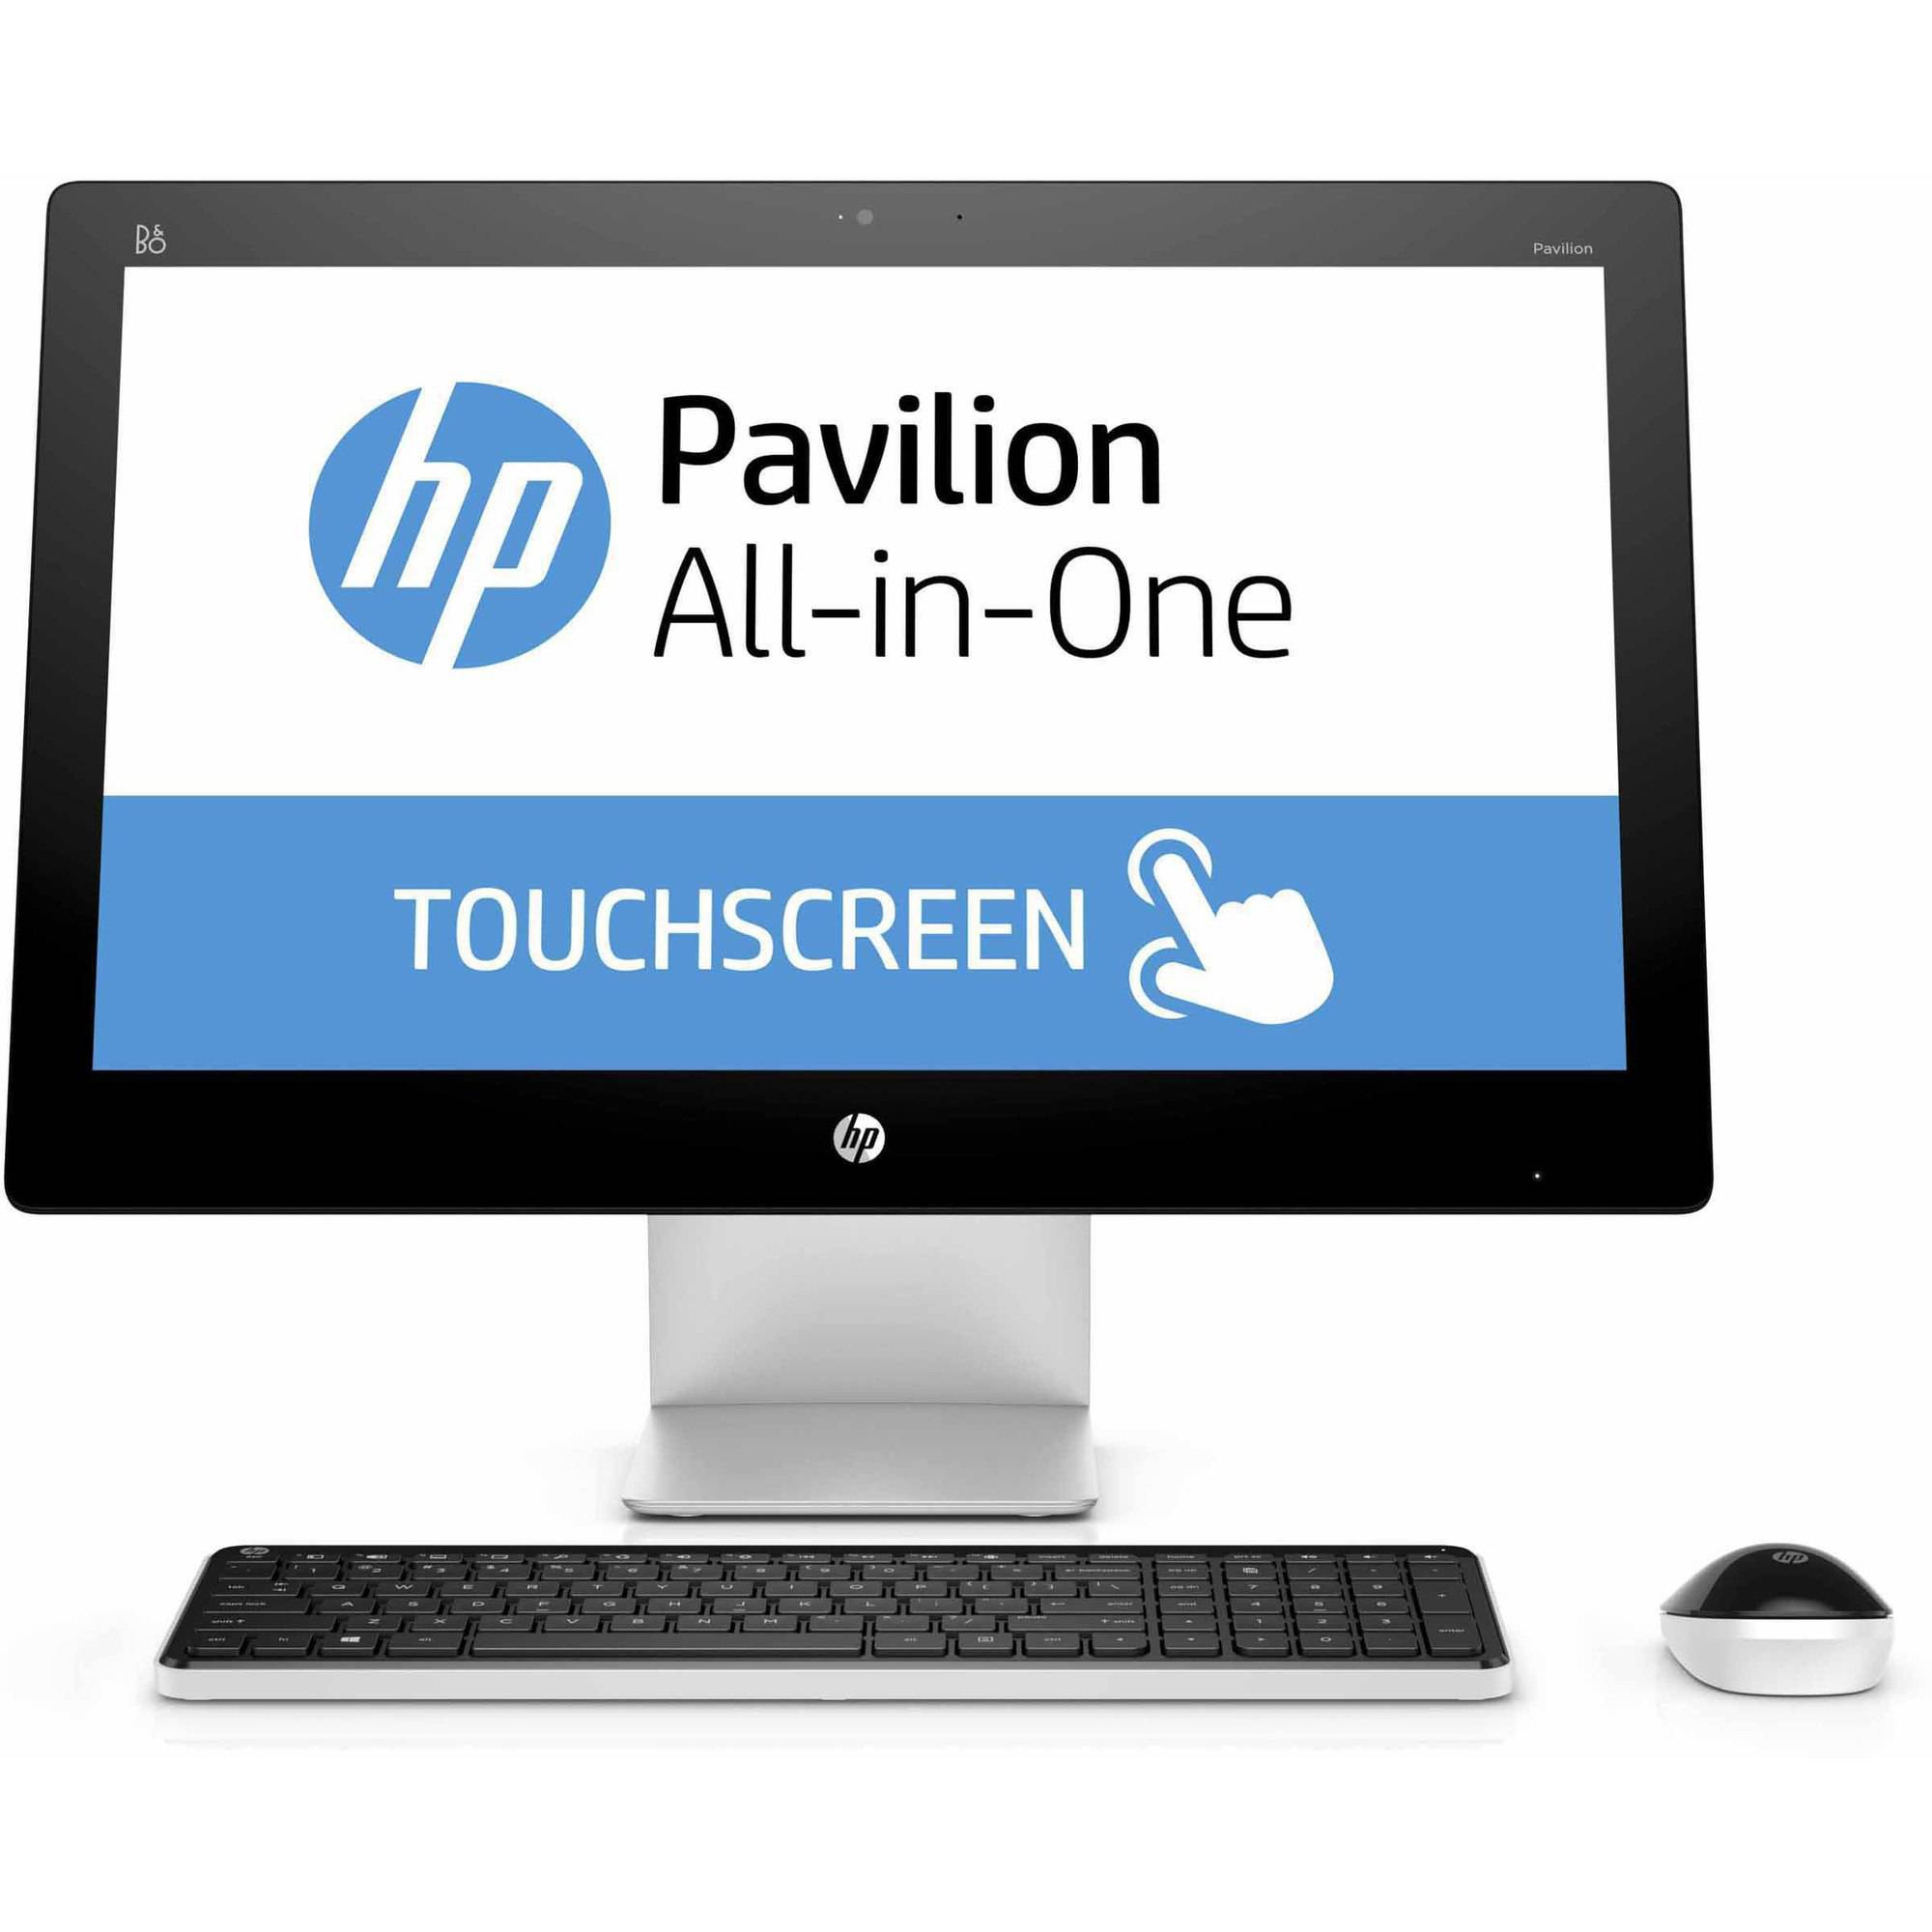 """HP Pavilion 23-q113w All-in-One Desktop PC with Intel Core i3-4170T Processor, 6GB Memory, 23"""" Touchscreen, 1TB Hard Drive and Windows 10 Home"""